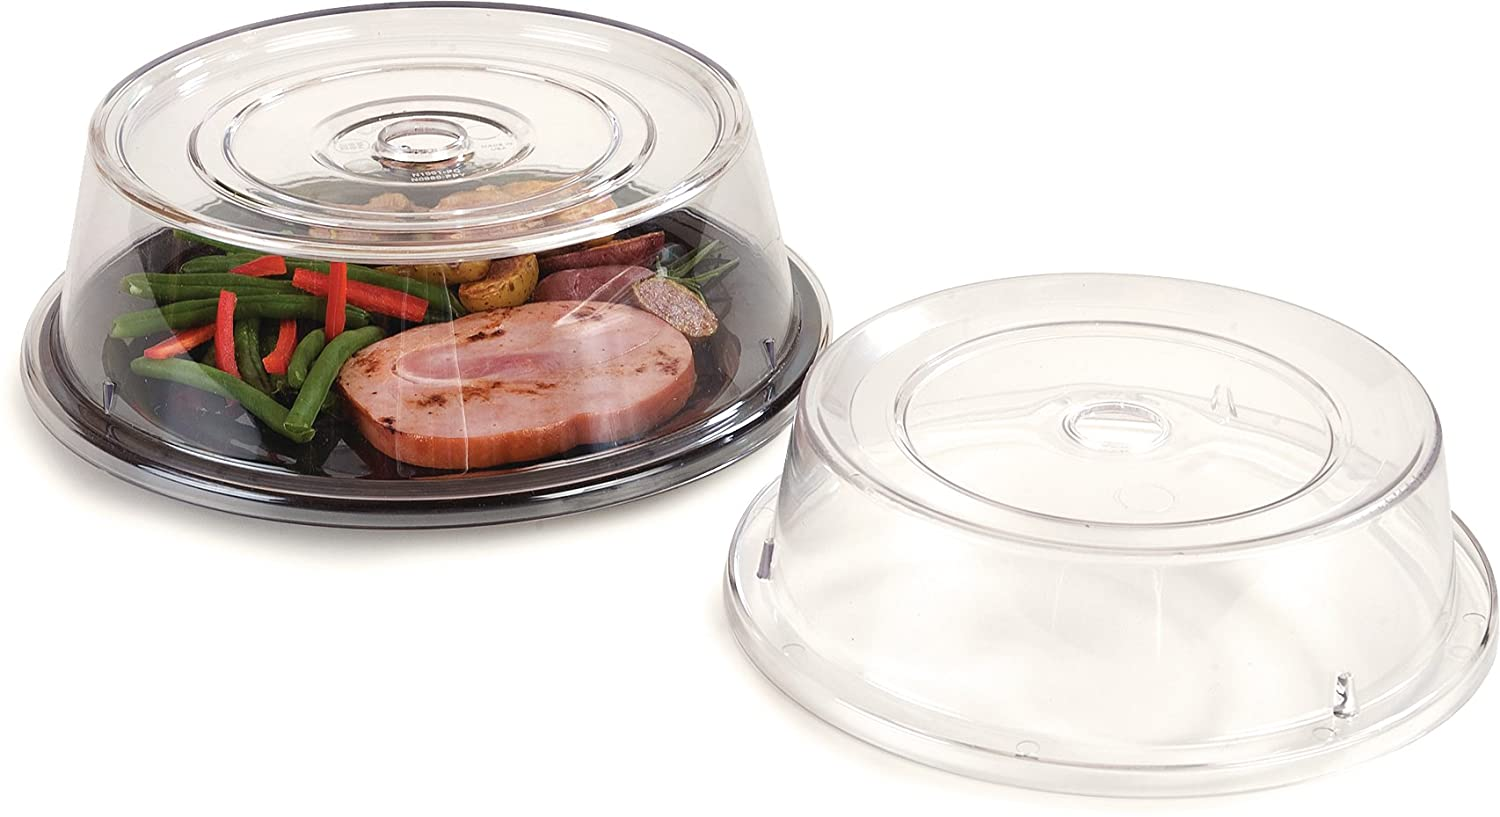 Carlisle 198907 Polycarbonate Plate Cover 10.6 Bottom Diameter x 3 Height 10.6 Bottom Diameter x 3 Height Carlisle FoodService Products CR-3491 Case of 12 Clear